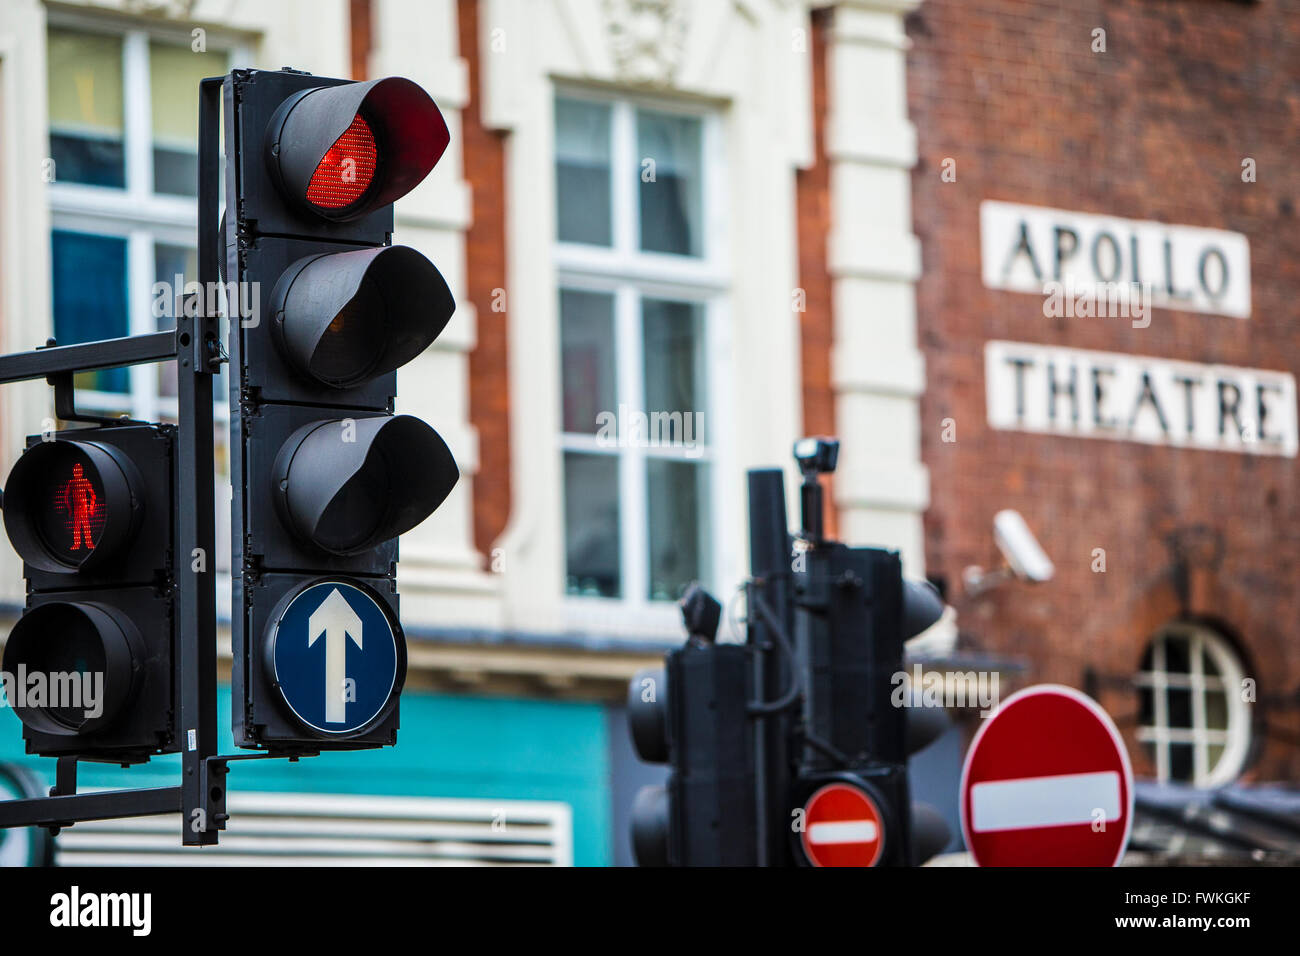 Apollo Theatre Theater London West End Traffic Light Street view - Stock Image